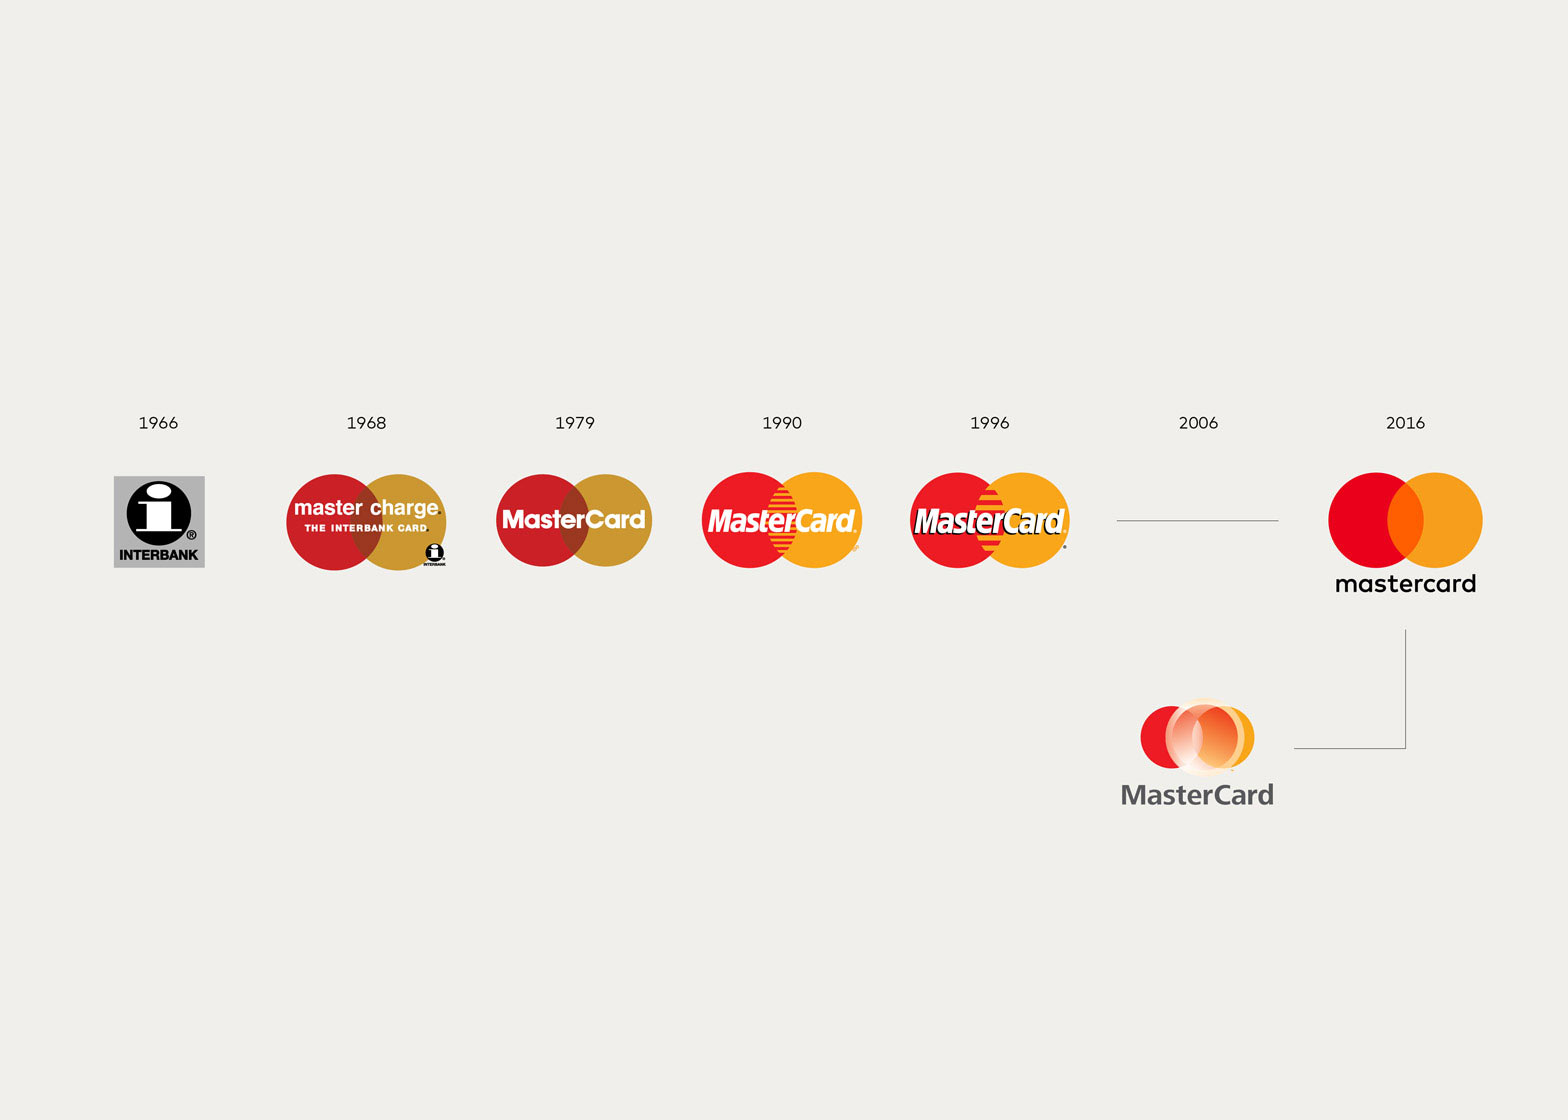 A chart documenting the evolution of the mastercard logo